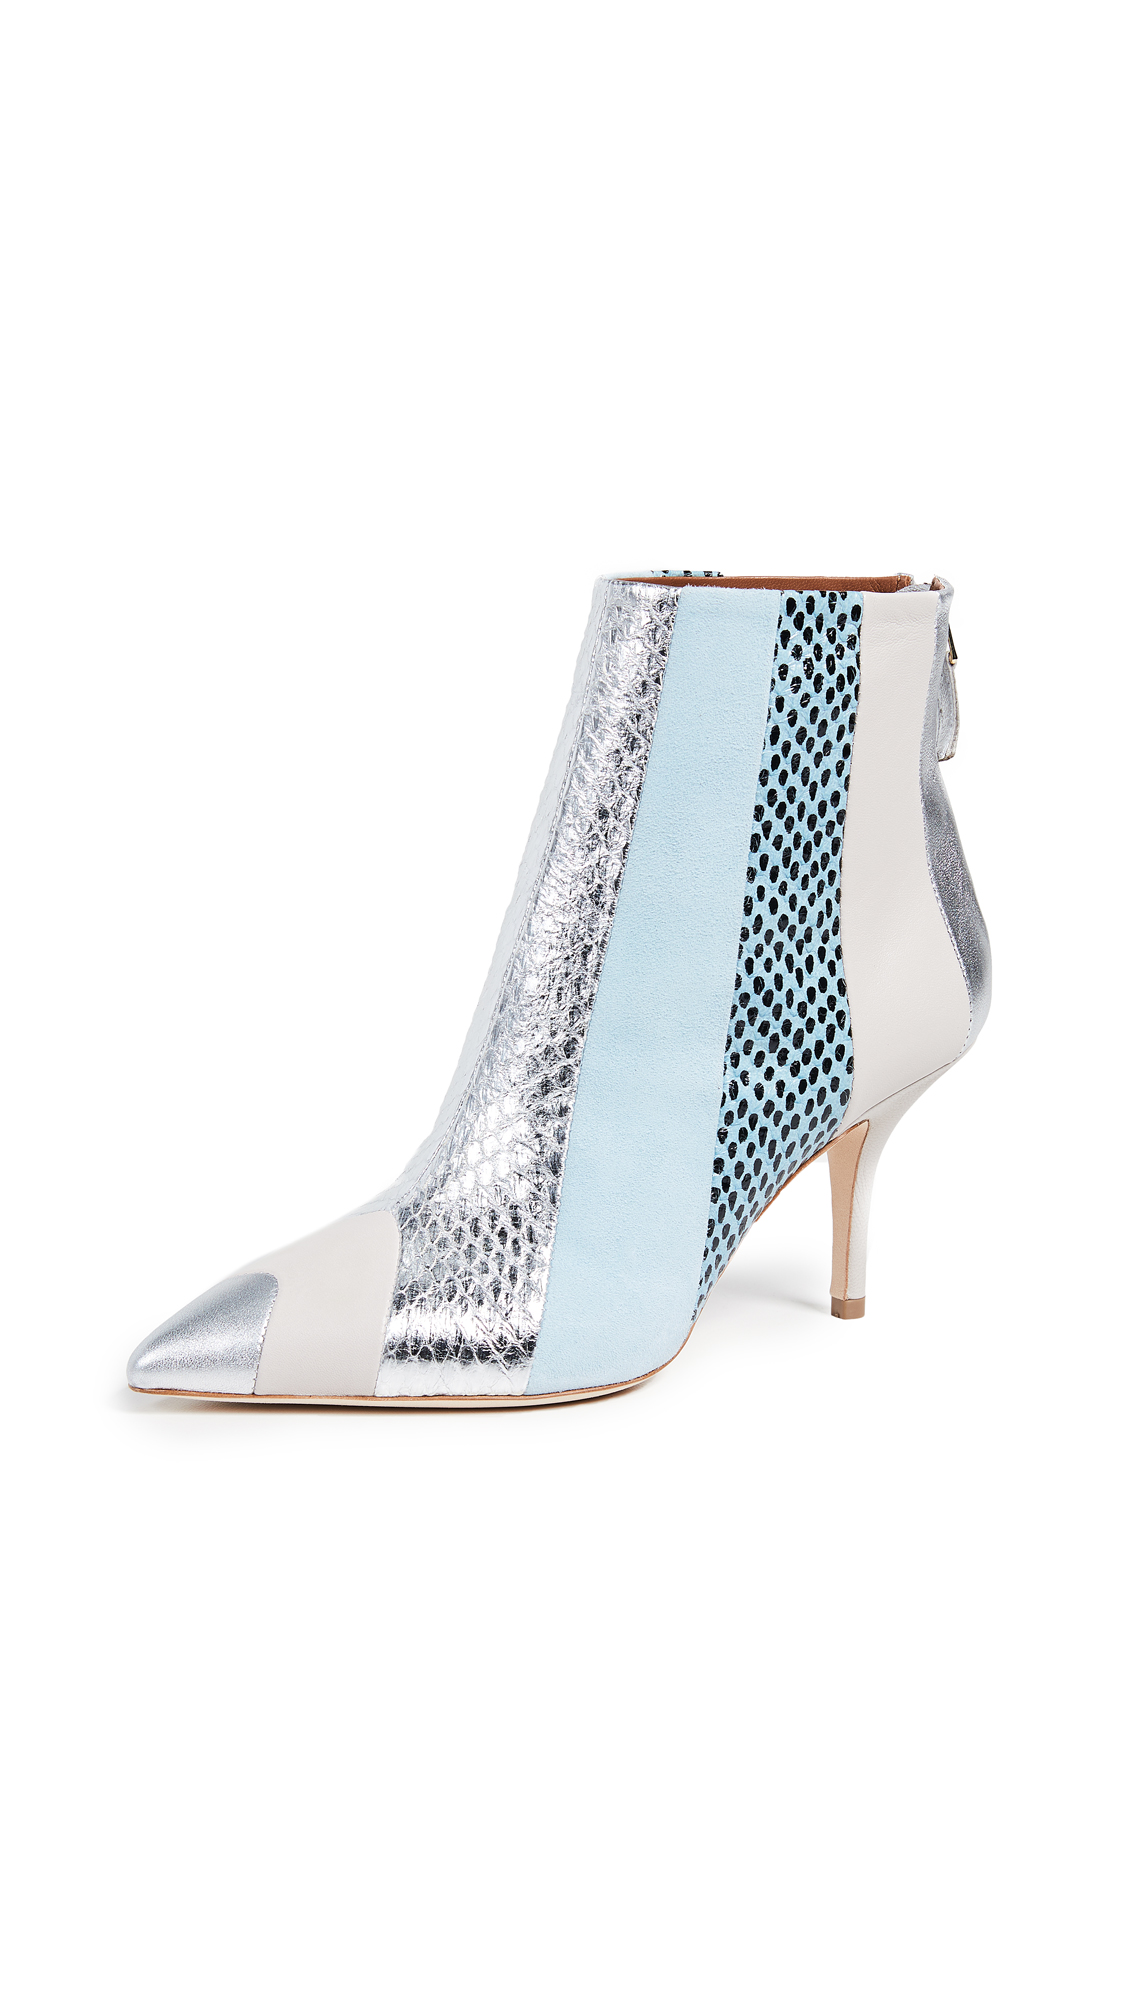 Malone Souliers Amal 70 Booties - Silver/Ice/Light Blue